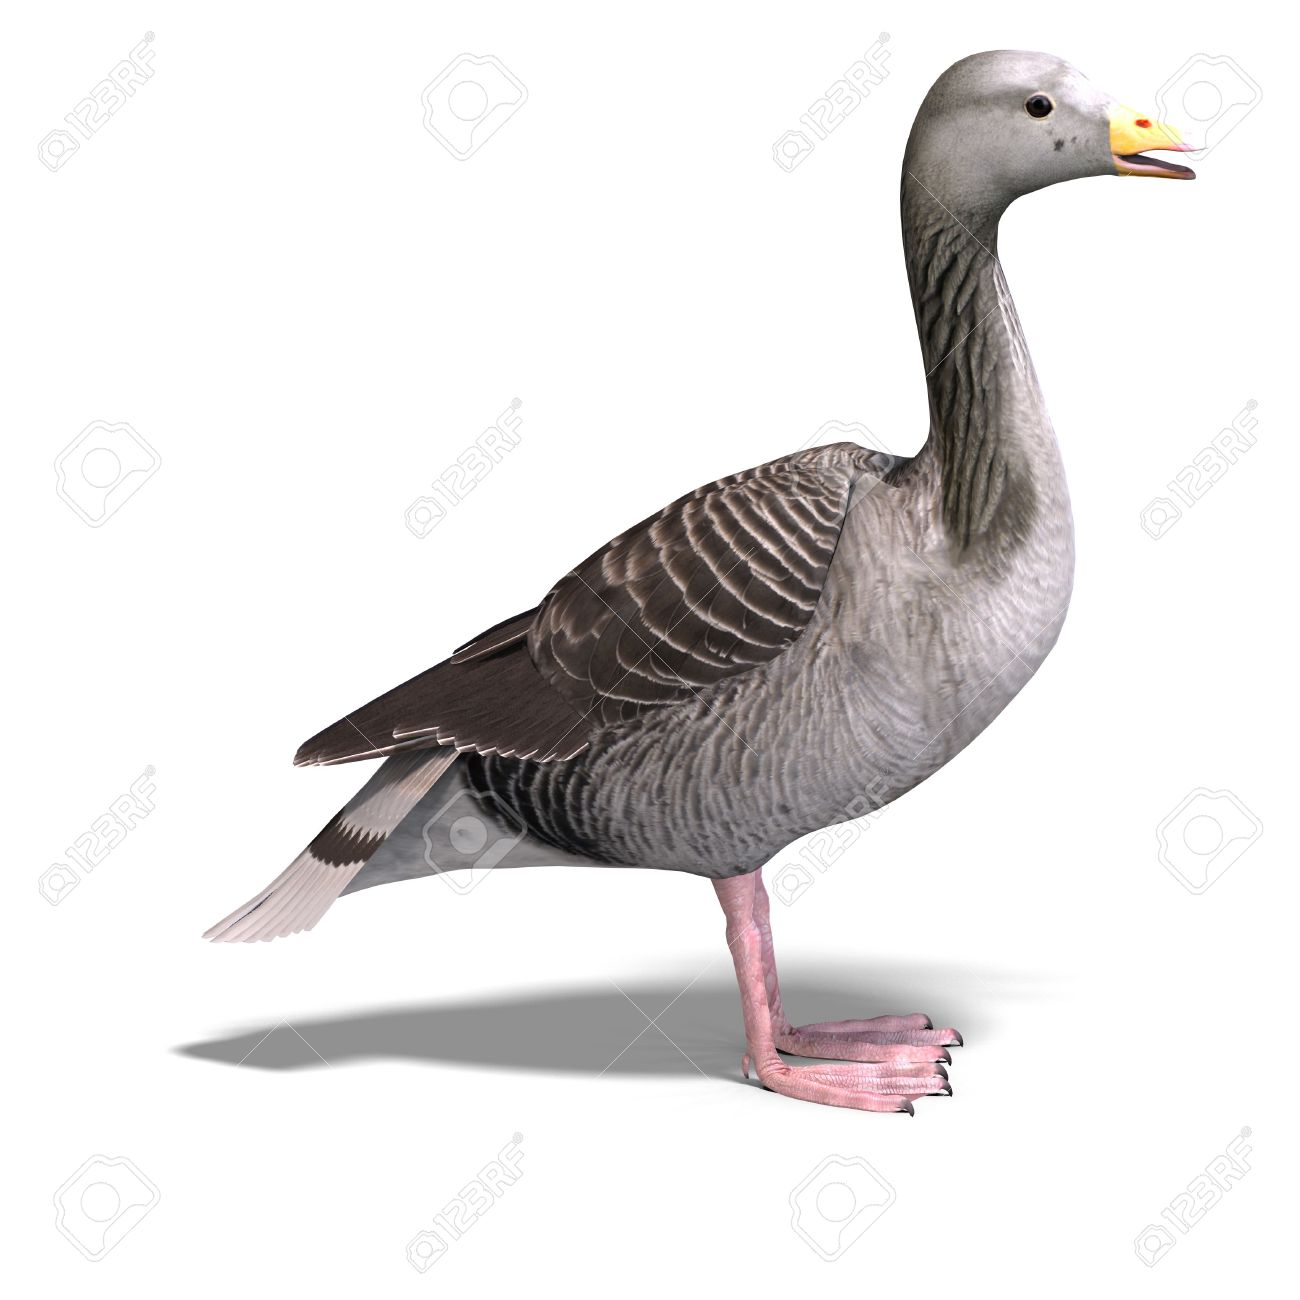 3D Rendering Of A Grey Goose Stock Photo, Picture And Royalty Free.